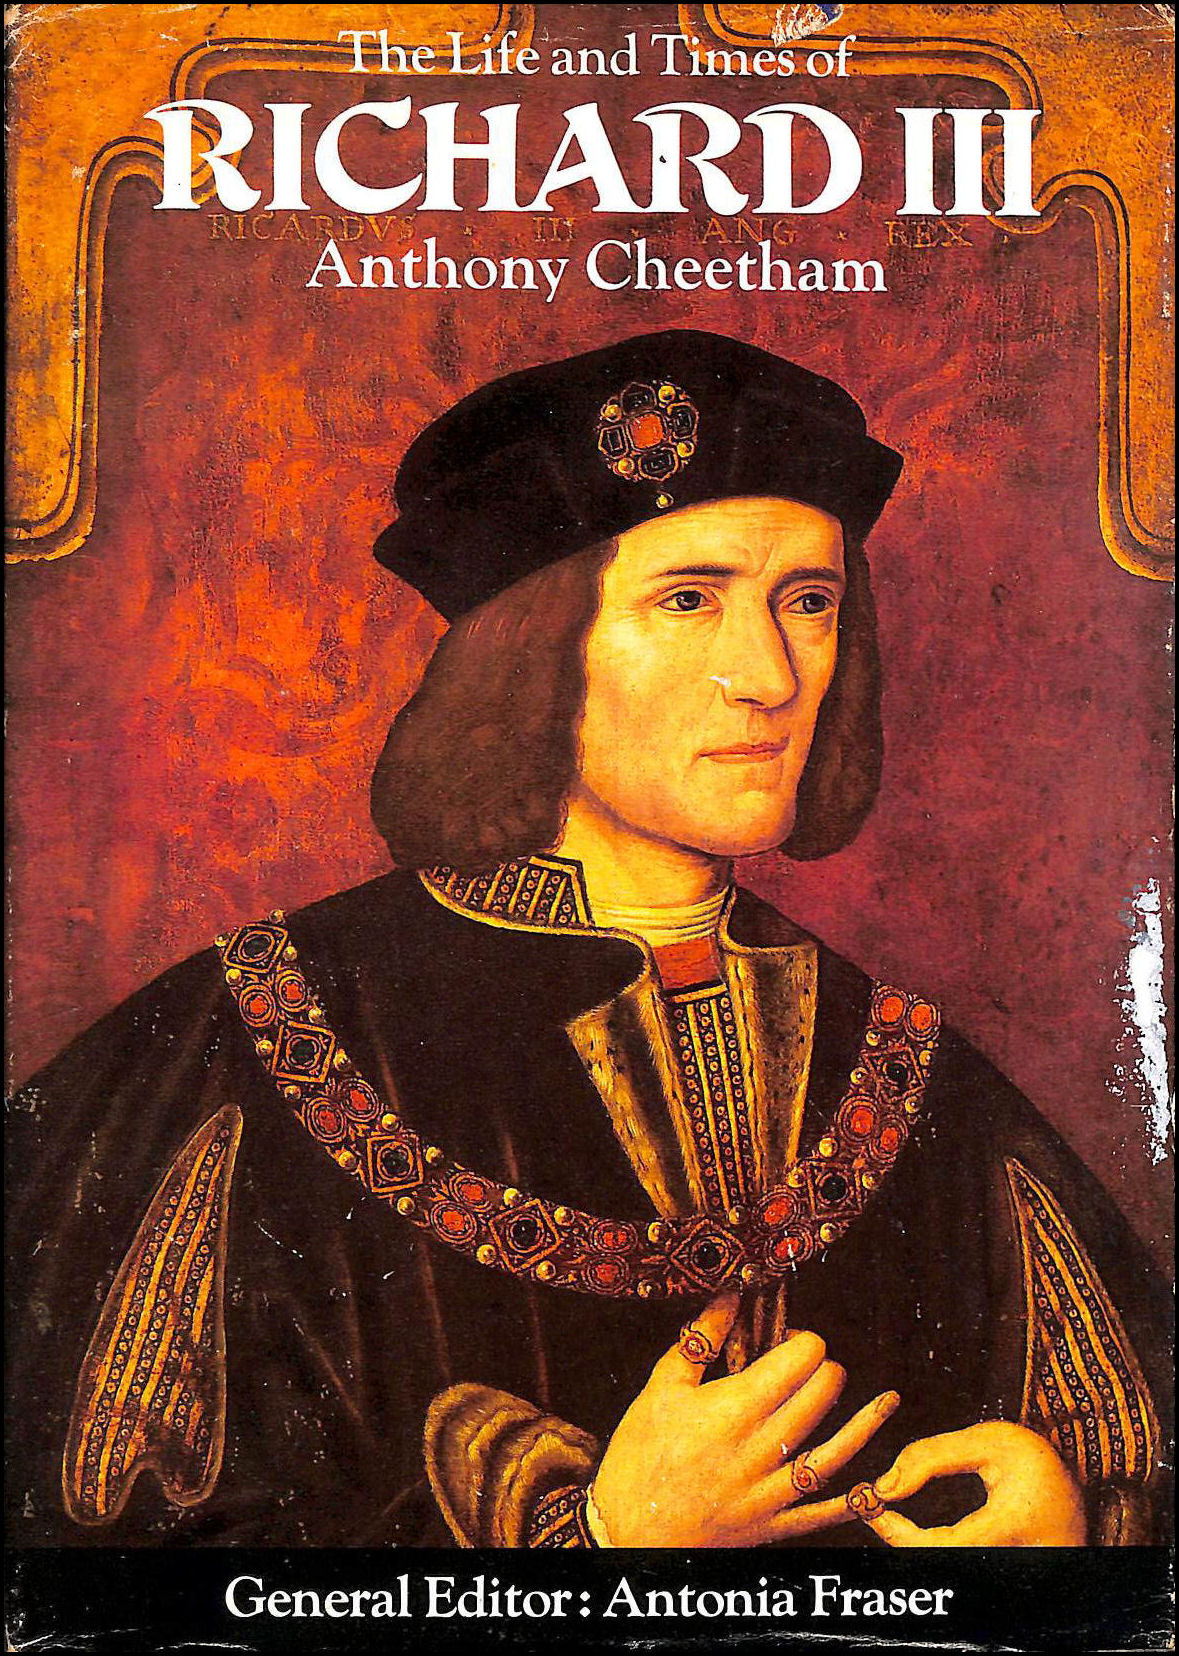 The Life and Times of Richard III, Cheetham A